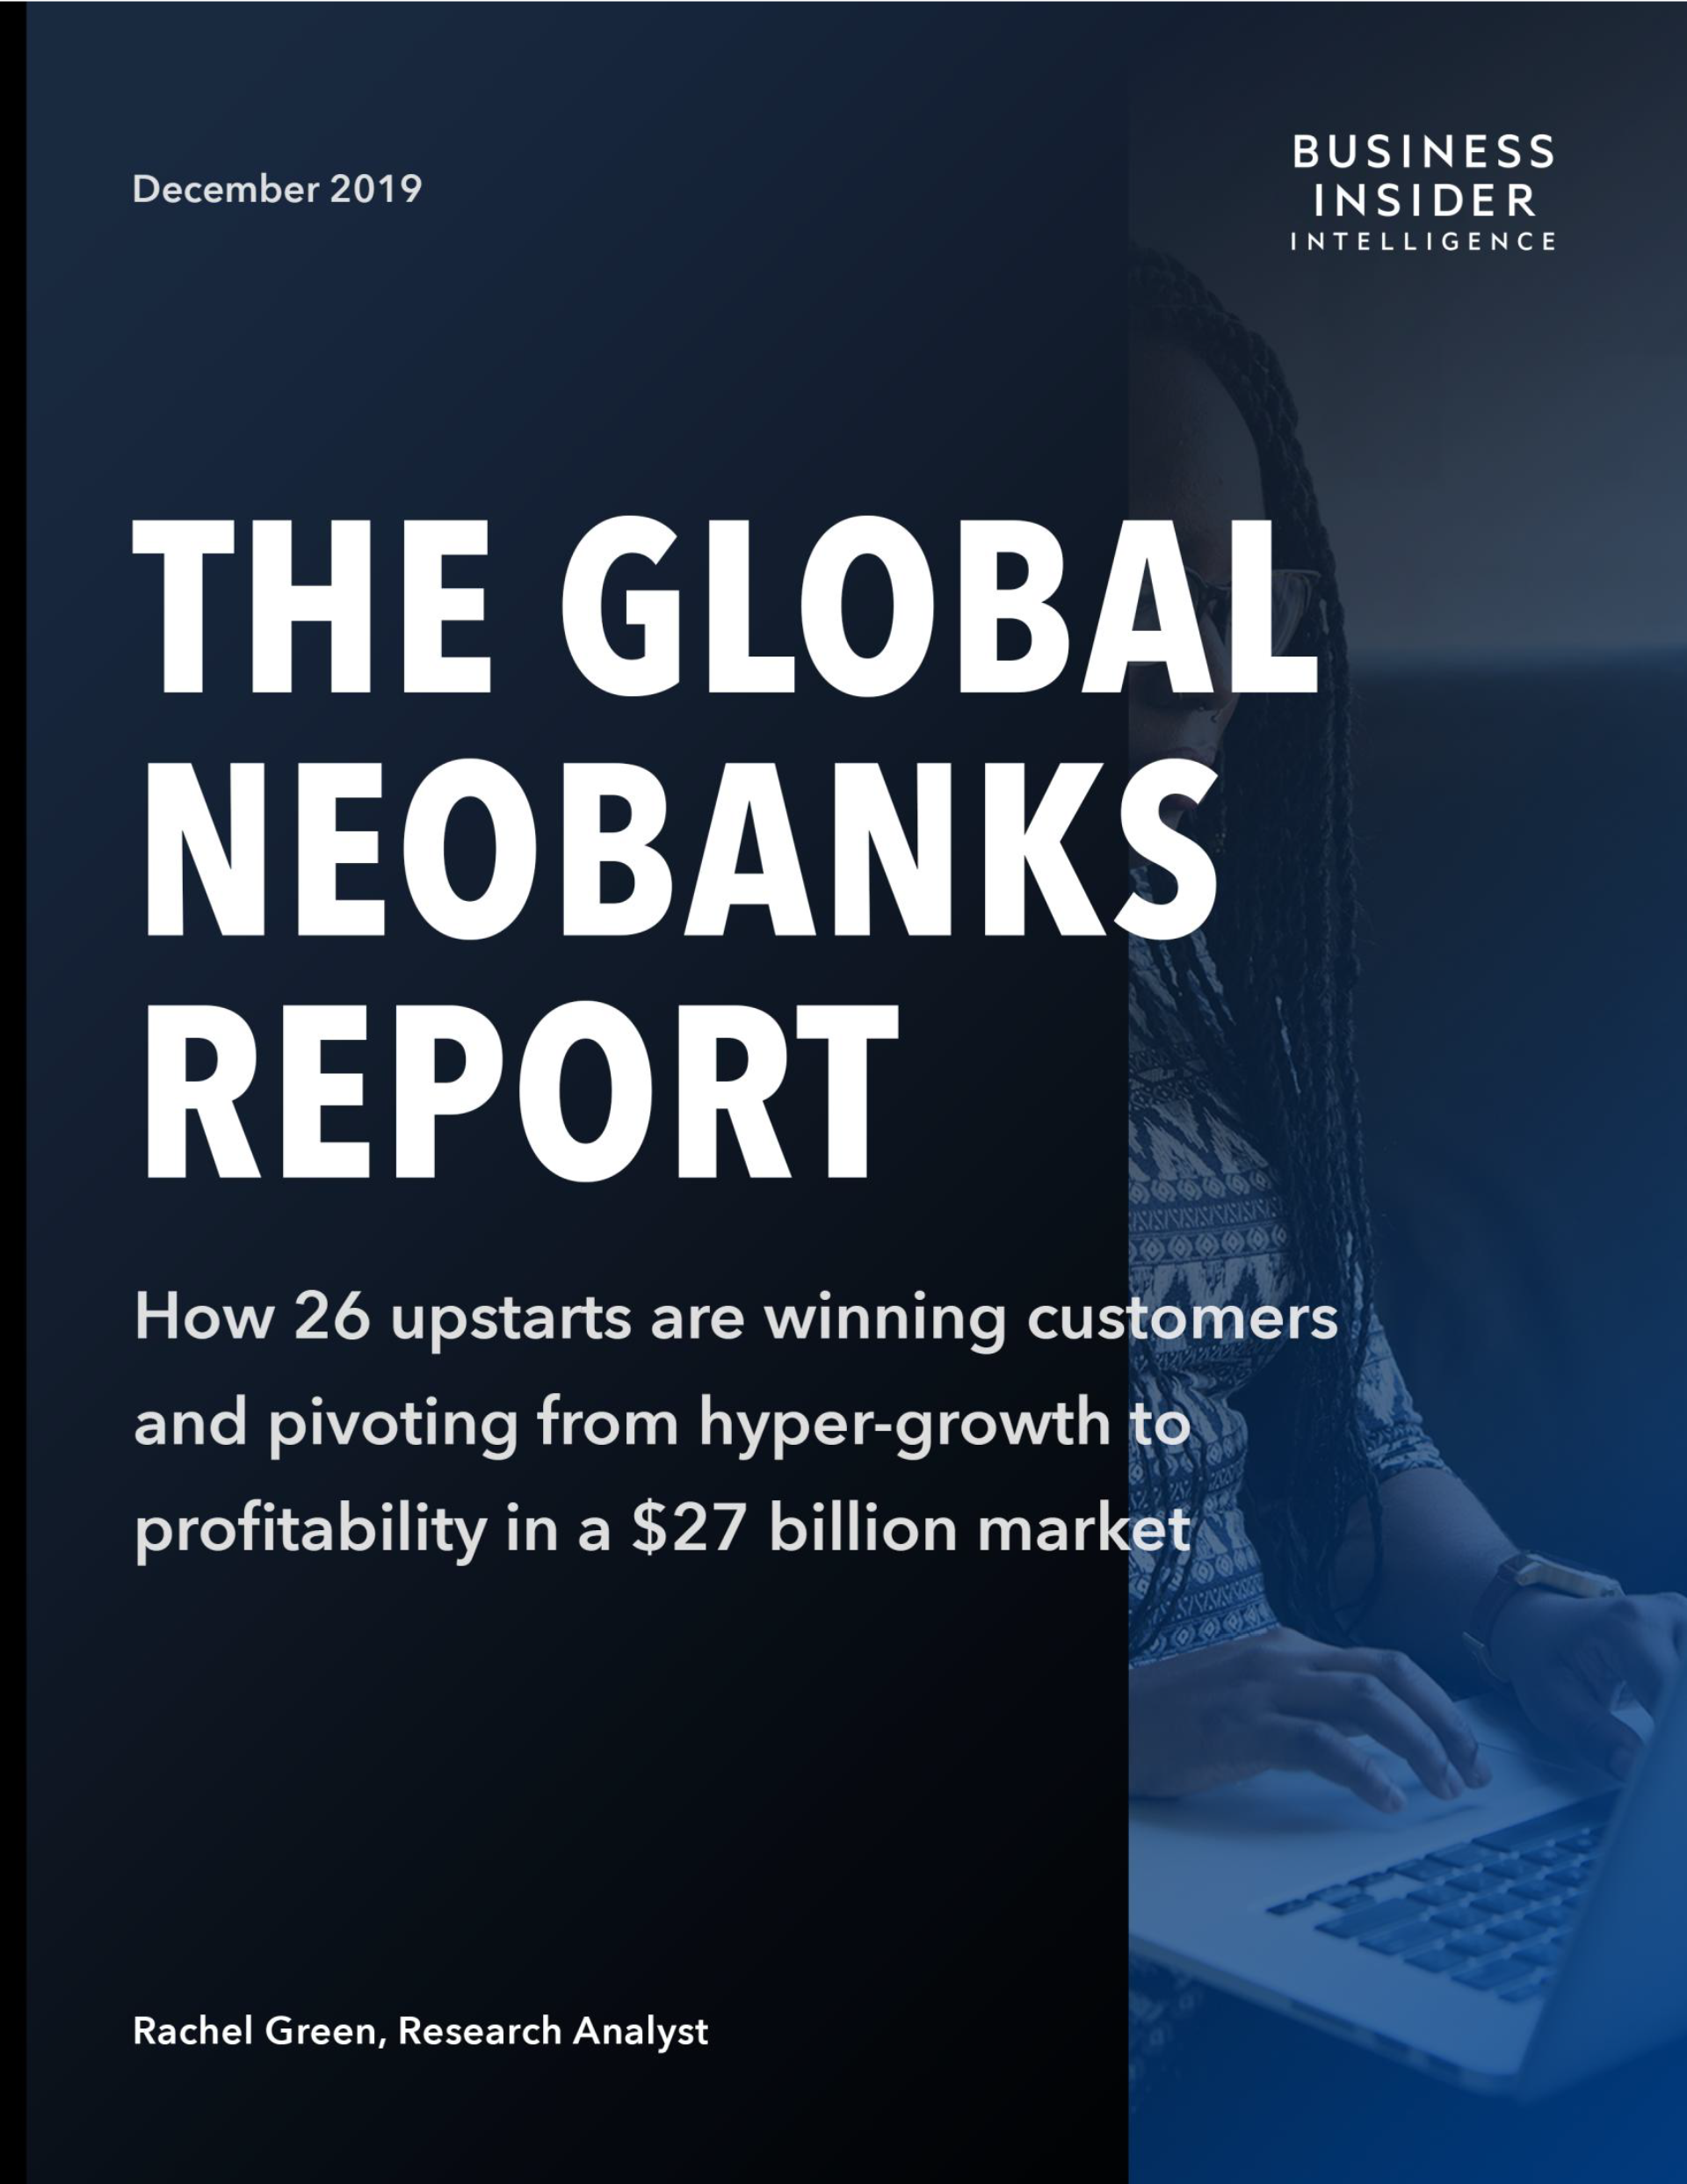 The Global Neobanks Report